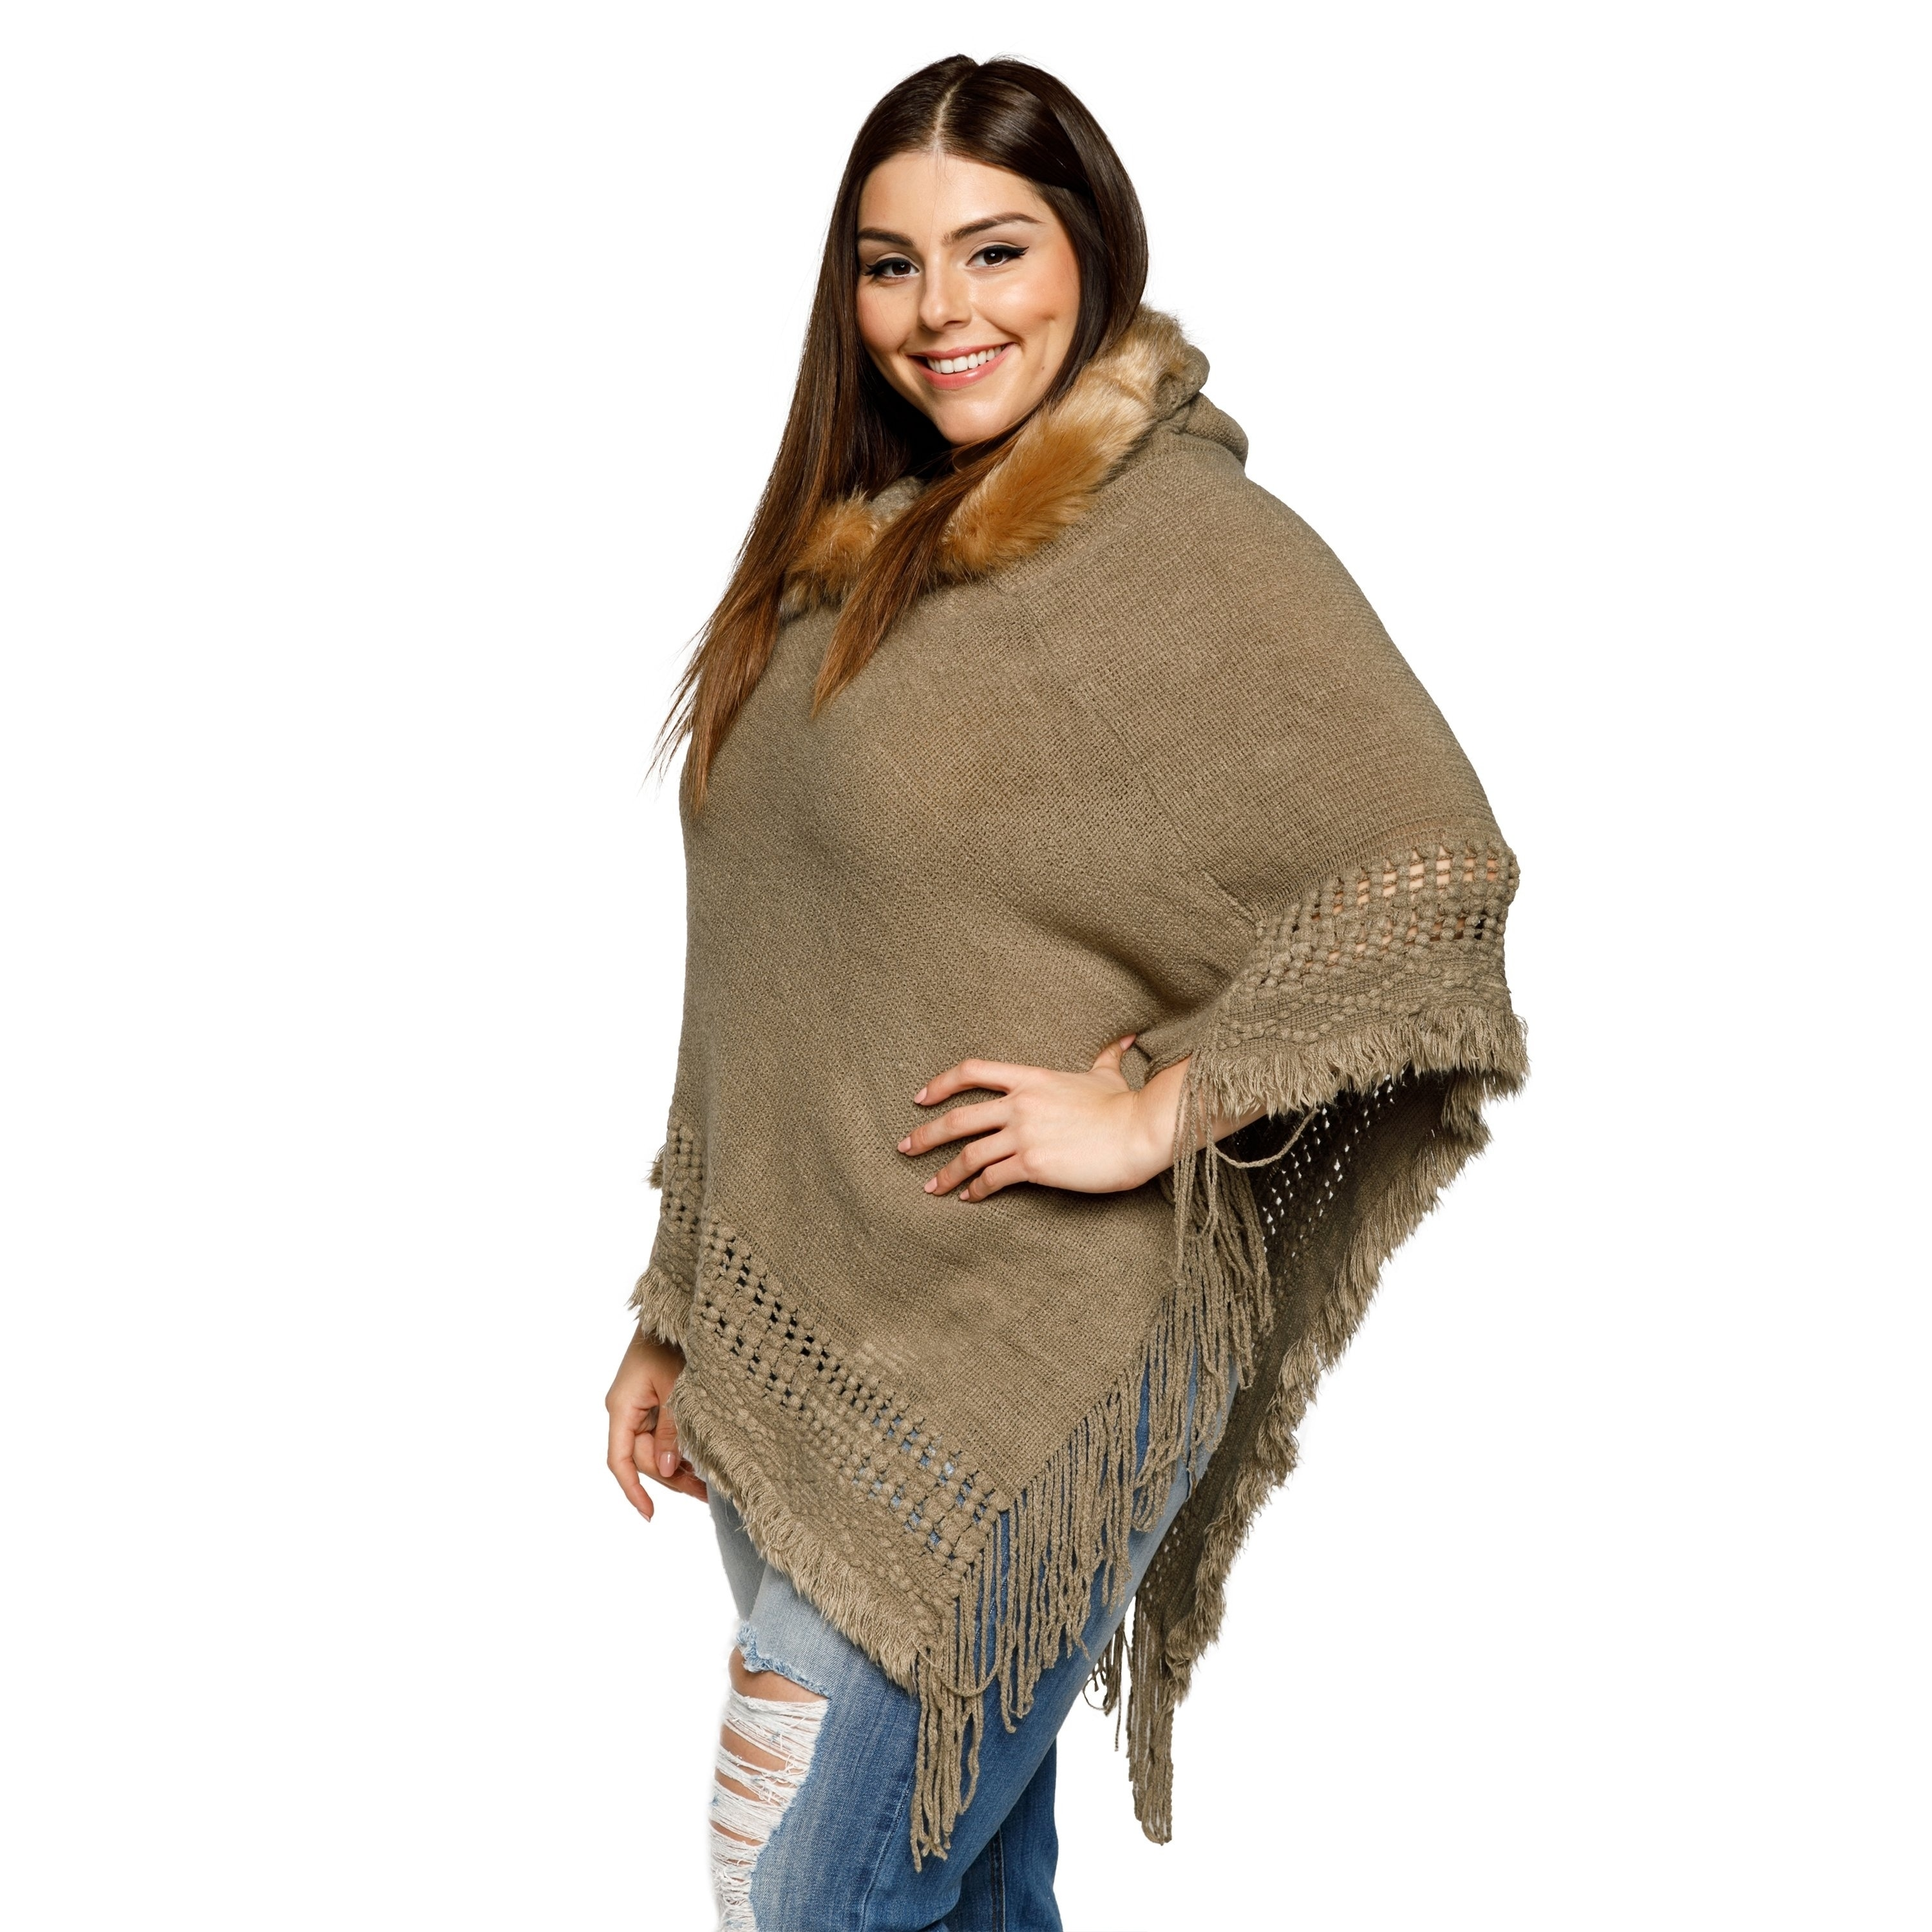 b2004dd90954c Shop Xehar Womens Plus Size Fringe Faux Fur Trim Hoodie Poncho Sweater -  Free Shipping On Orders Over  45 - Overstock.com - 18529827